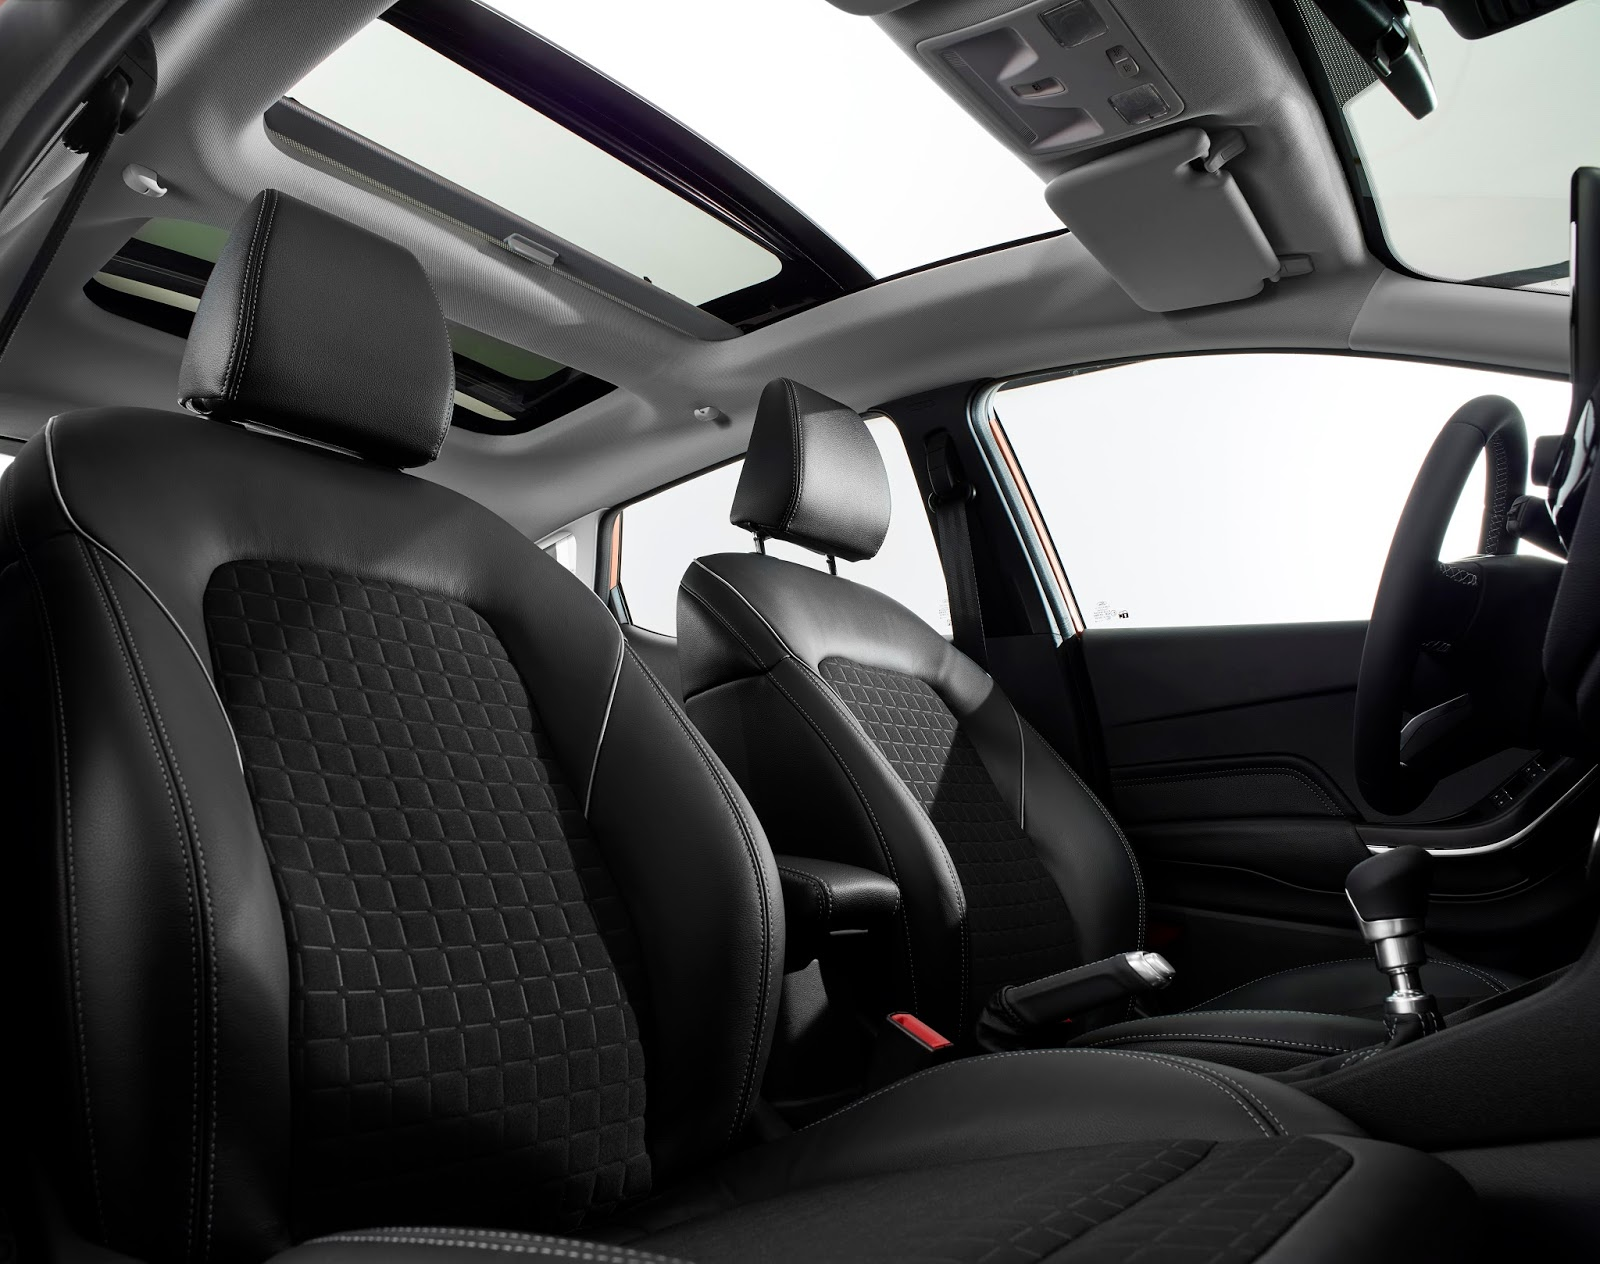 FORD FIESTA2016 TITANIUM FRONT SEAT ROW PANORAMIC ROOF 05 Τα πρώτα Ford Fiesta έρχονται στην Ελλάδα, με τιμή από 12.990€